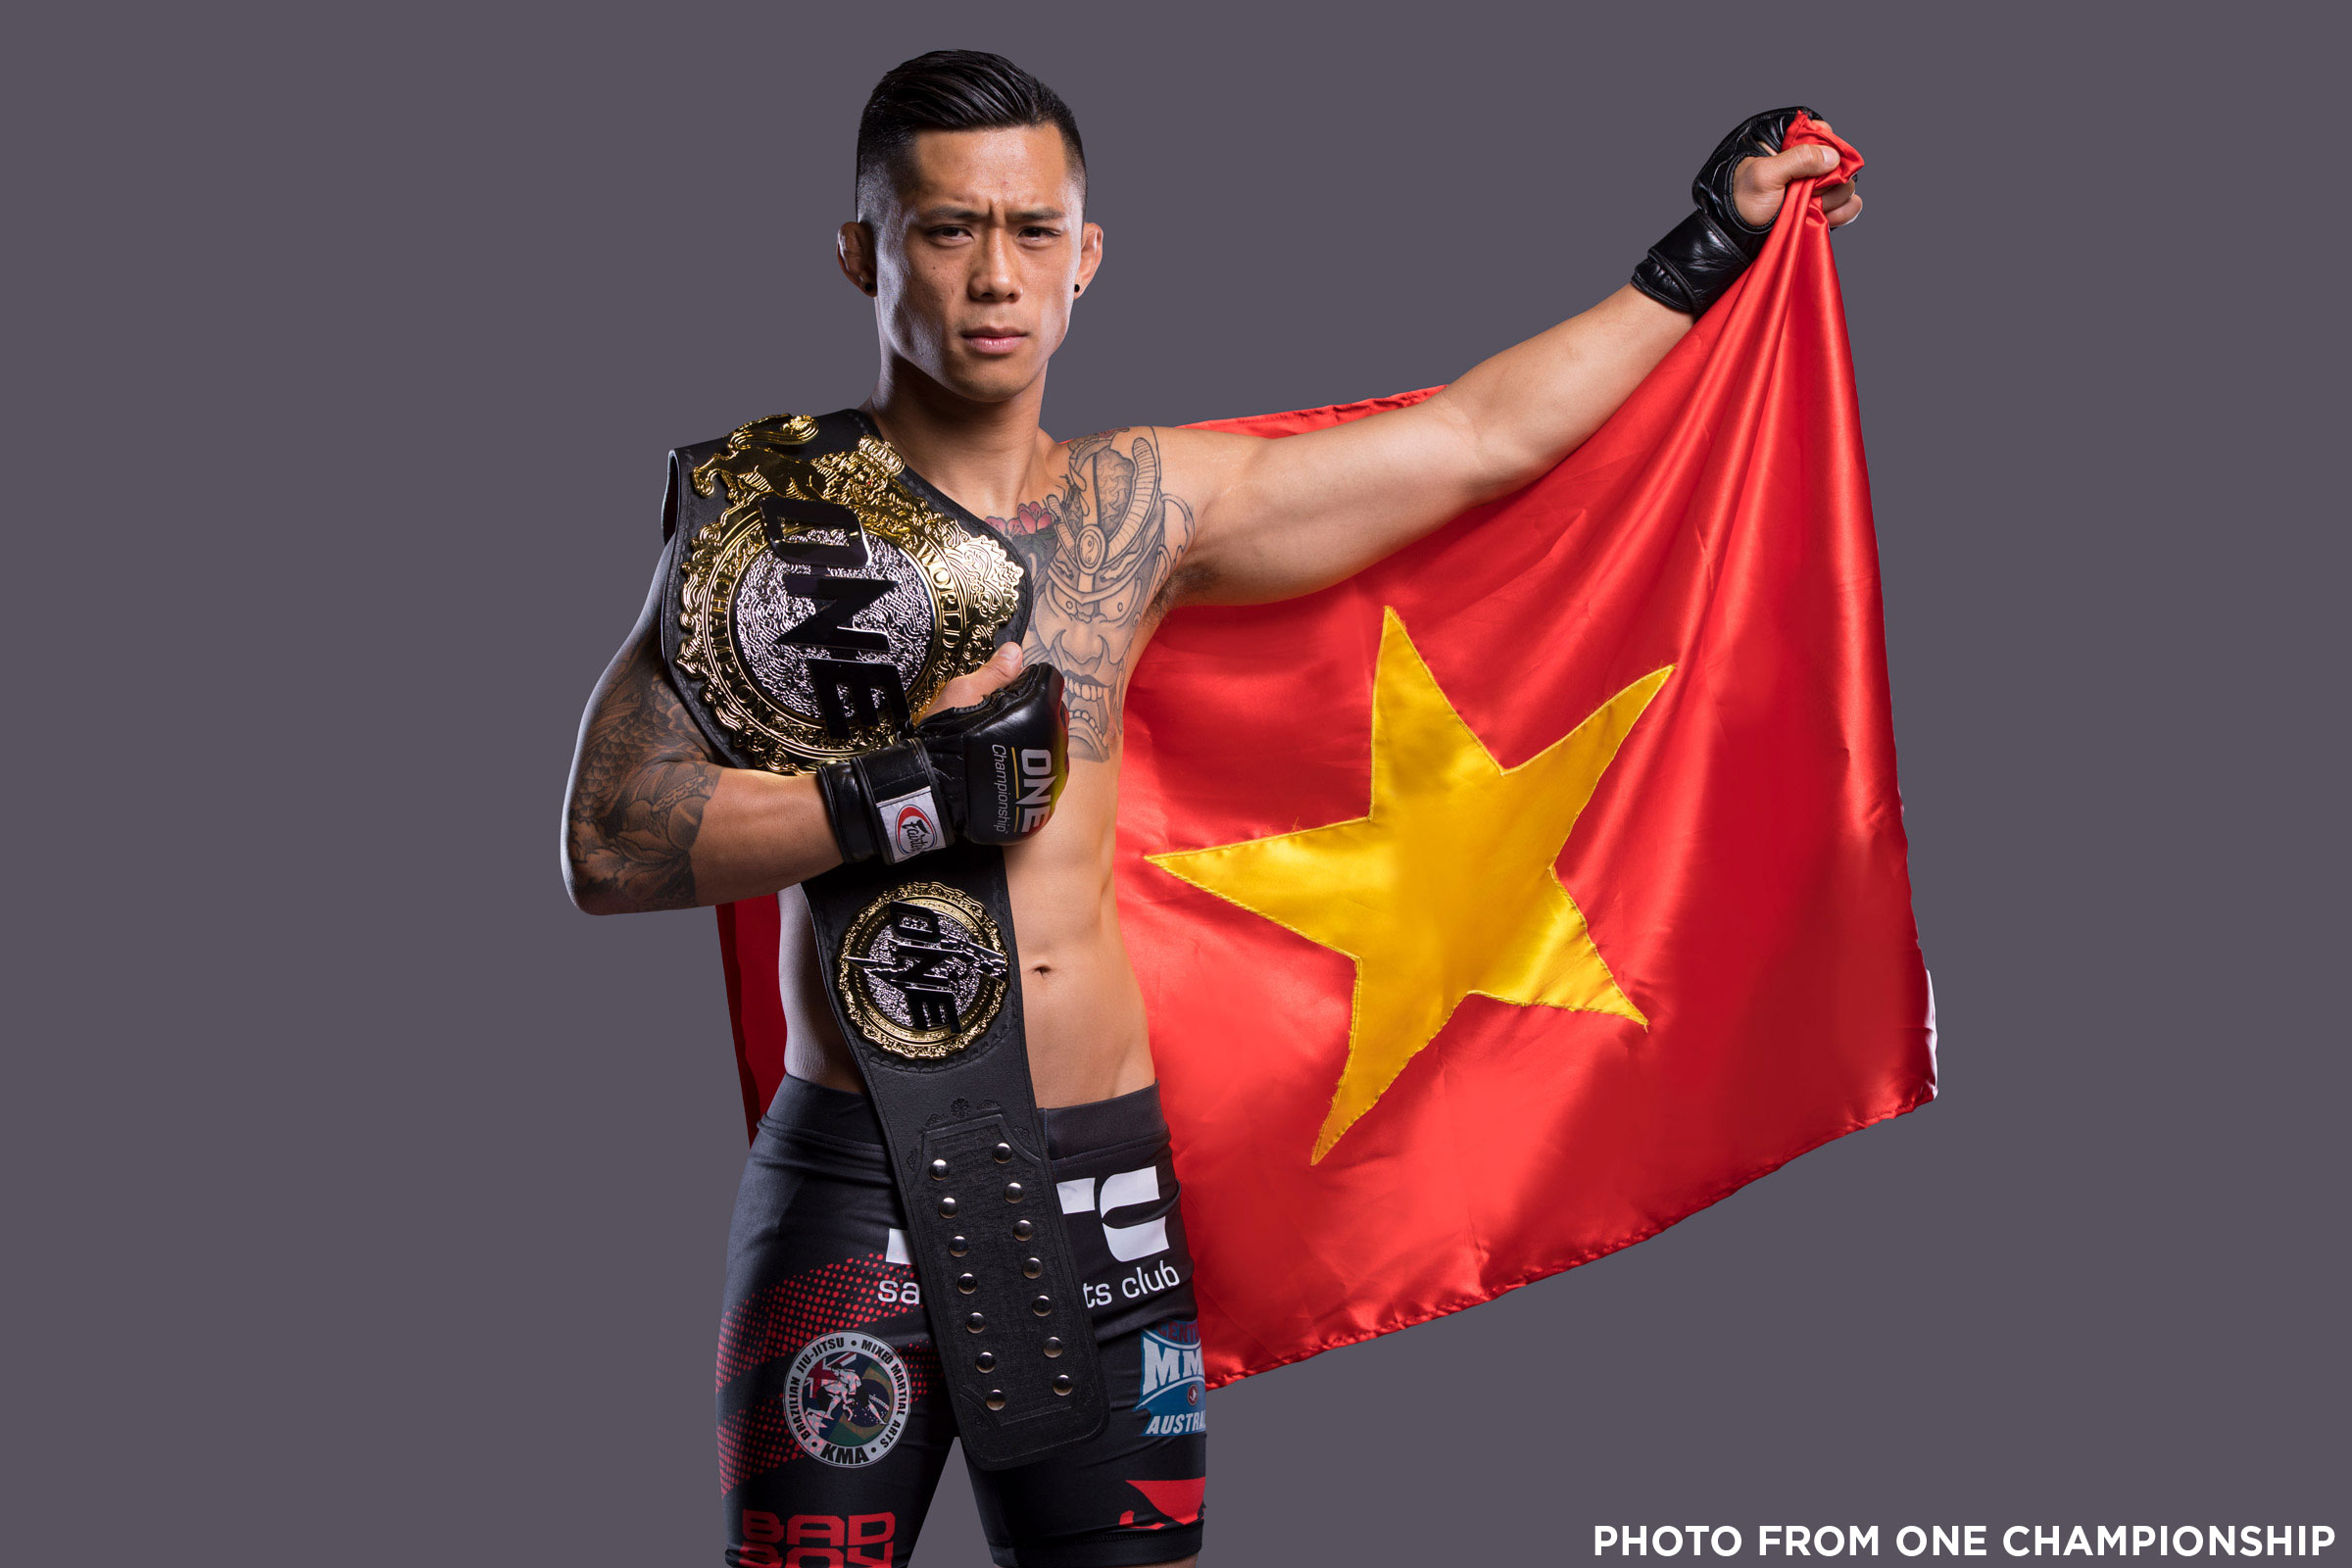 Philippine Sports News - Tiebreaker Times Double champion-seeking Martin Nguyen looks to continue inspiring Vietnam Mixed Martial Arts News ONE Championship  ONE: Legends of the World Martin Nguyen